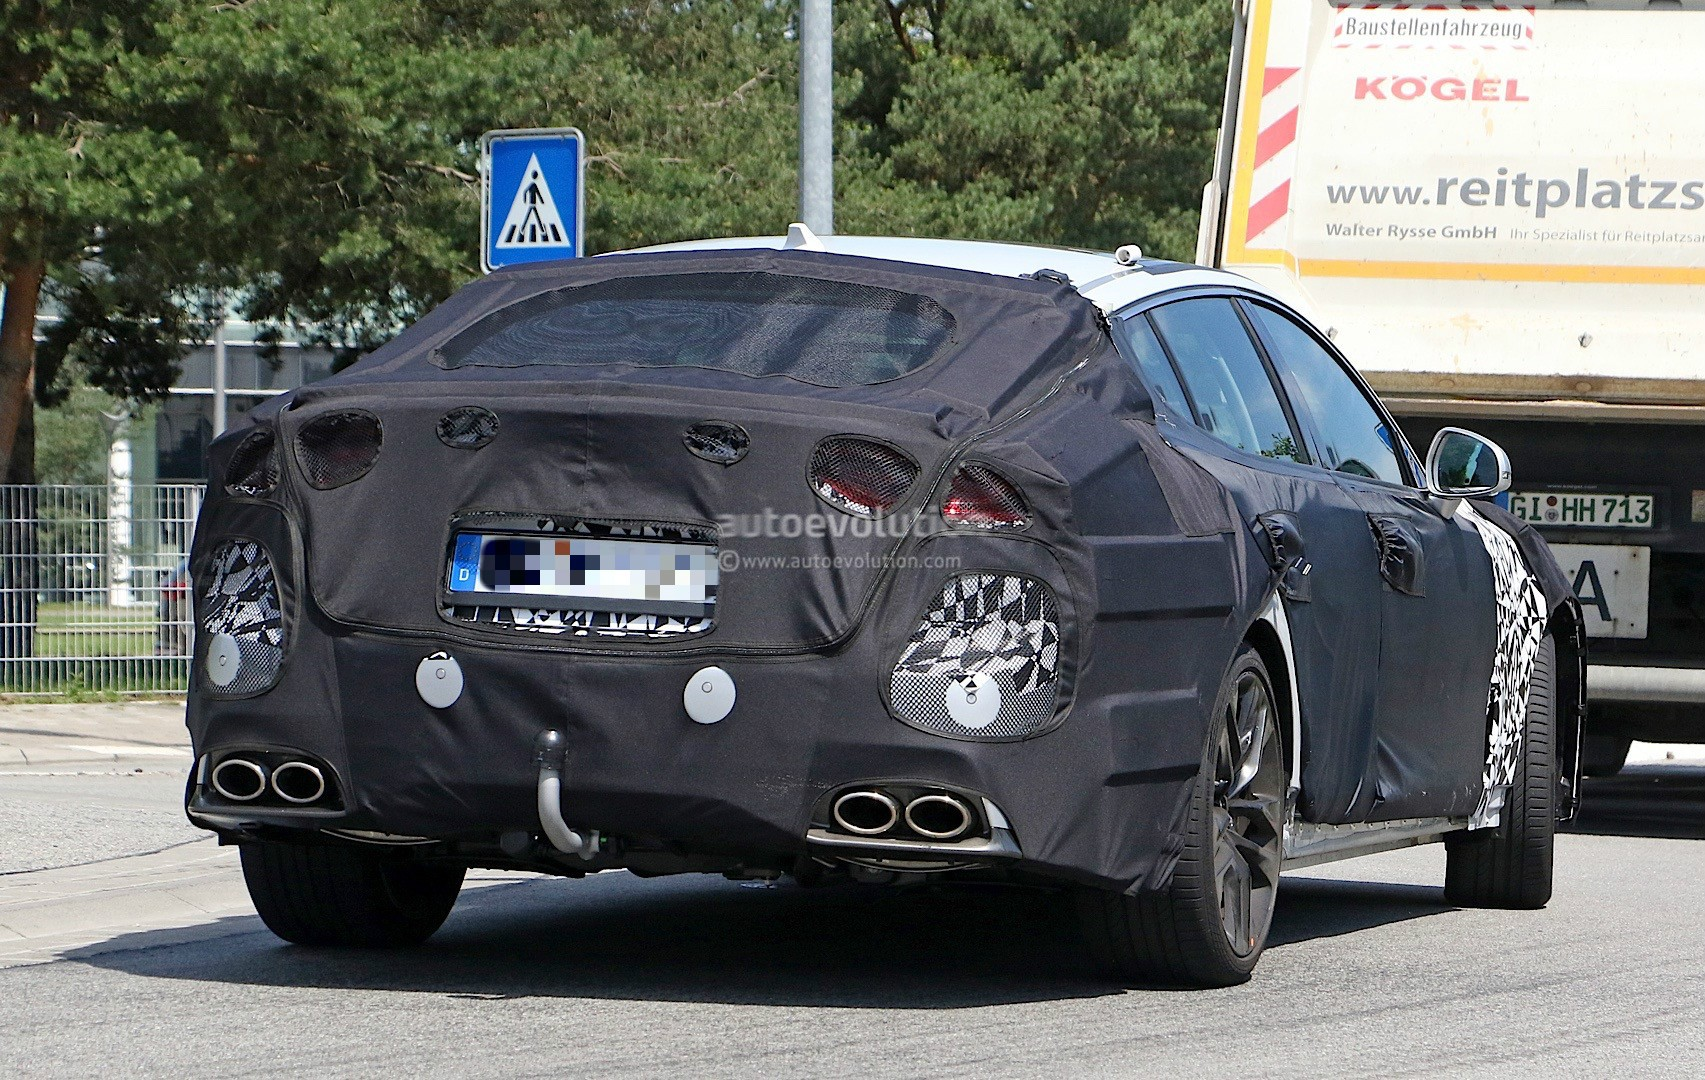 2018-kia-g​t-spied-in​-germany-c​ould-to-be​-called-st​inger_11